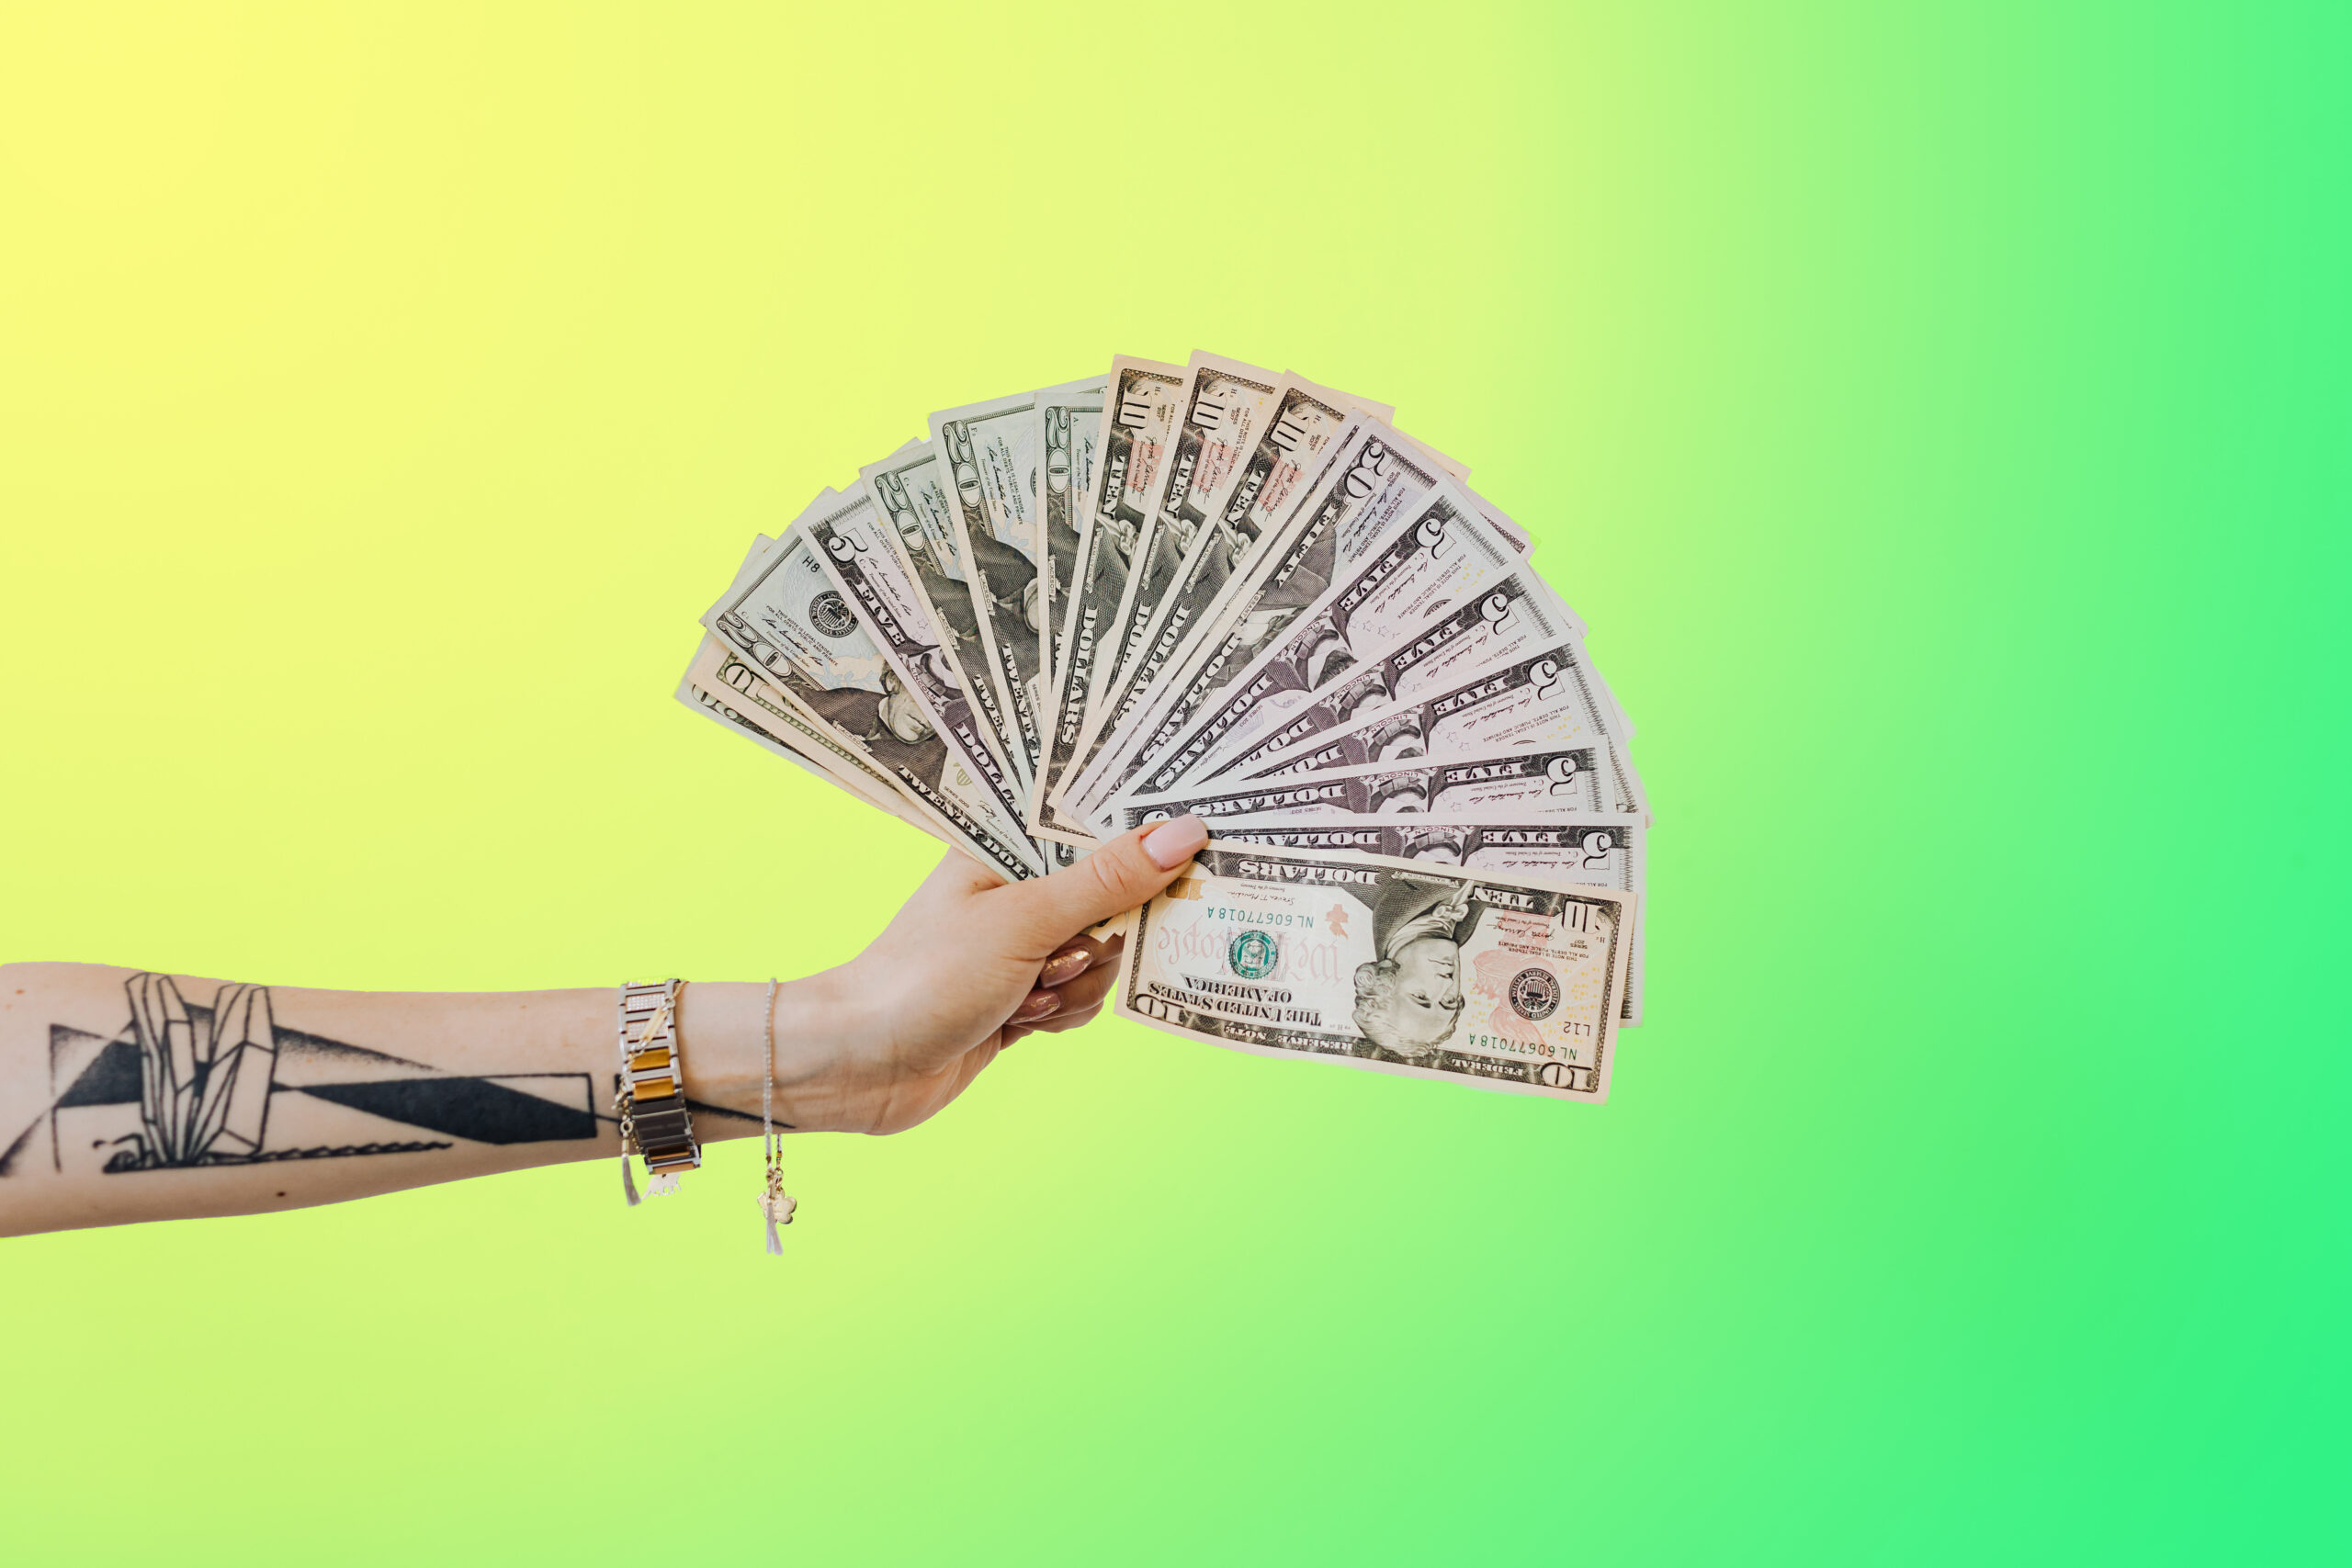 An outstretched arm with a tattoo on it is holding several 5, 10, and 20 dollar bills in a fan formation.